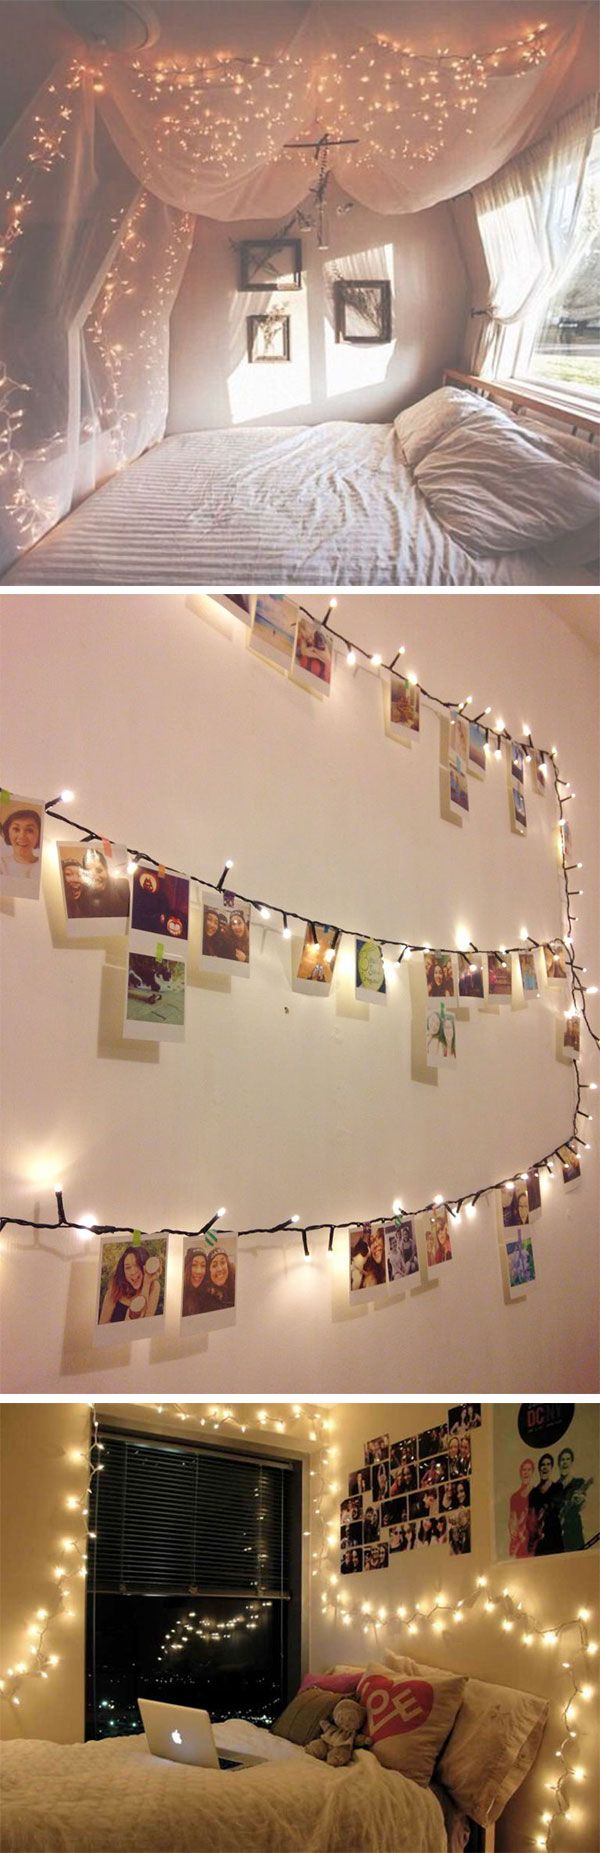 Bedroom fairy lights tumblr - 13 Ways To Use Fairy Lights To Make Your Home Look Magical